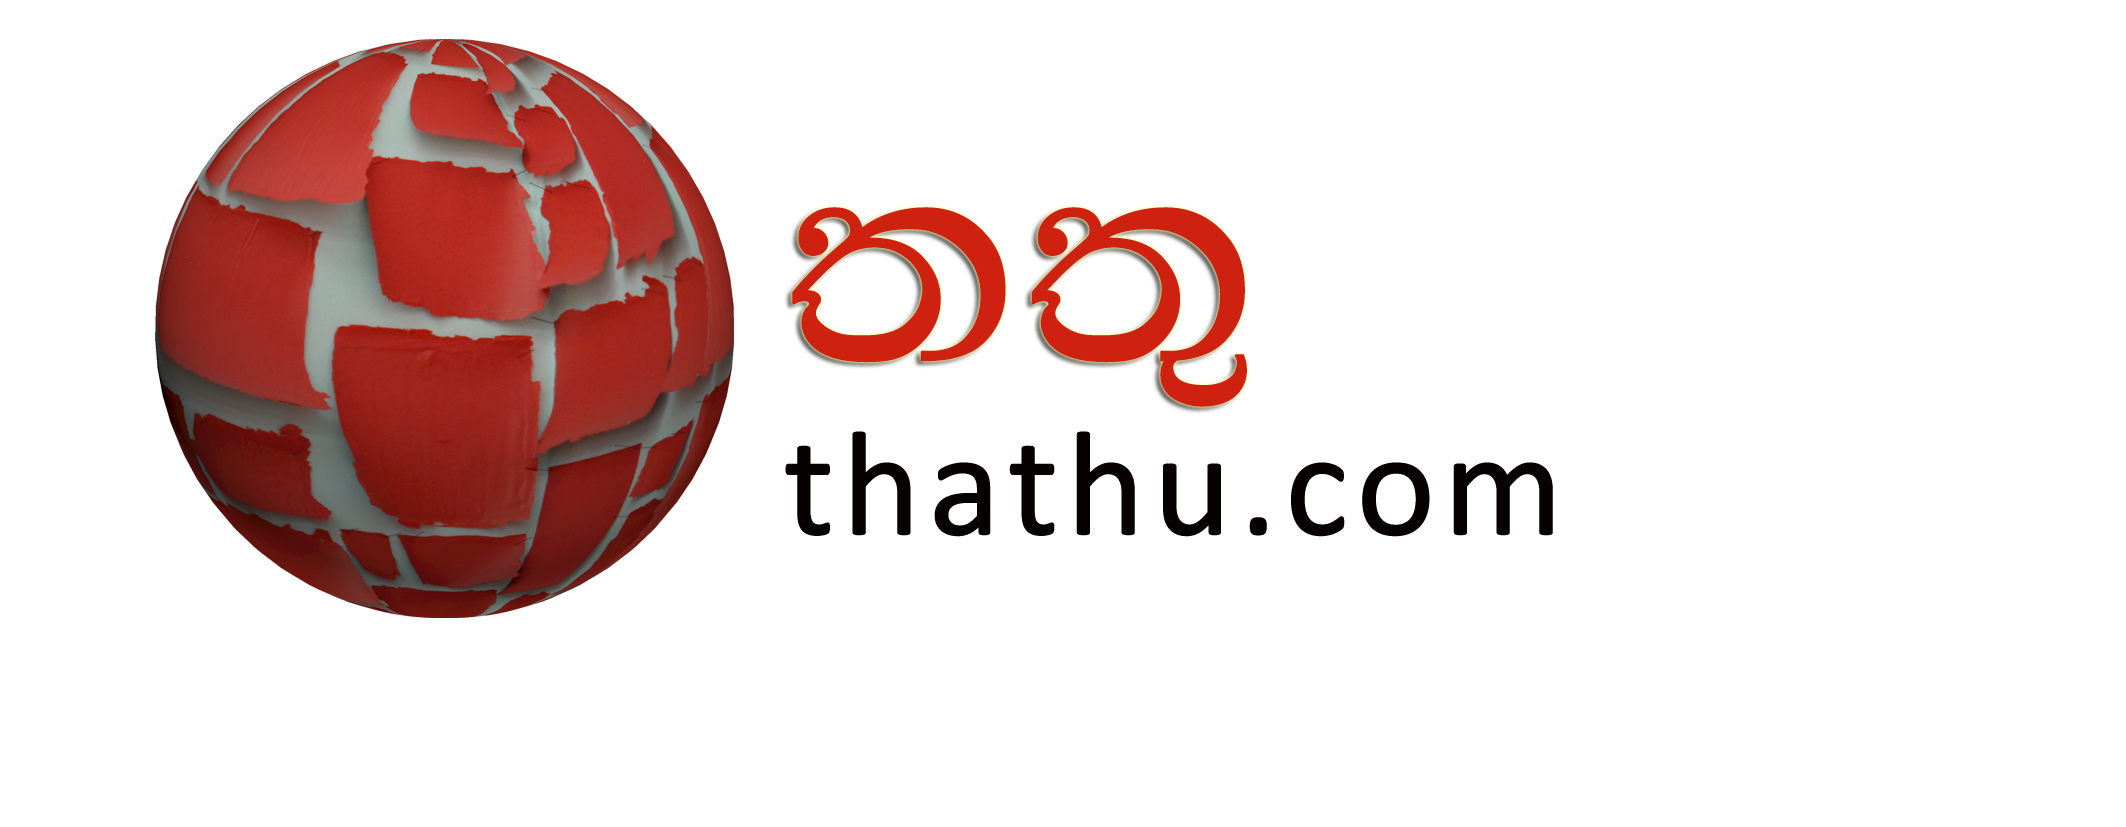 thathu.com